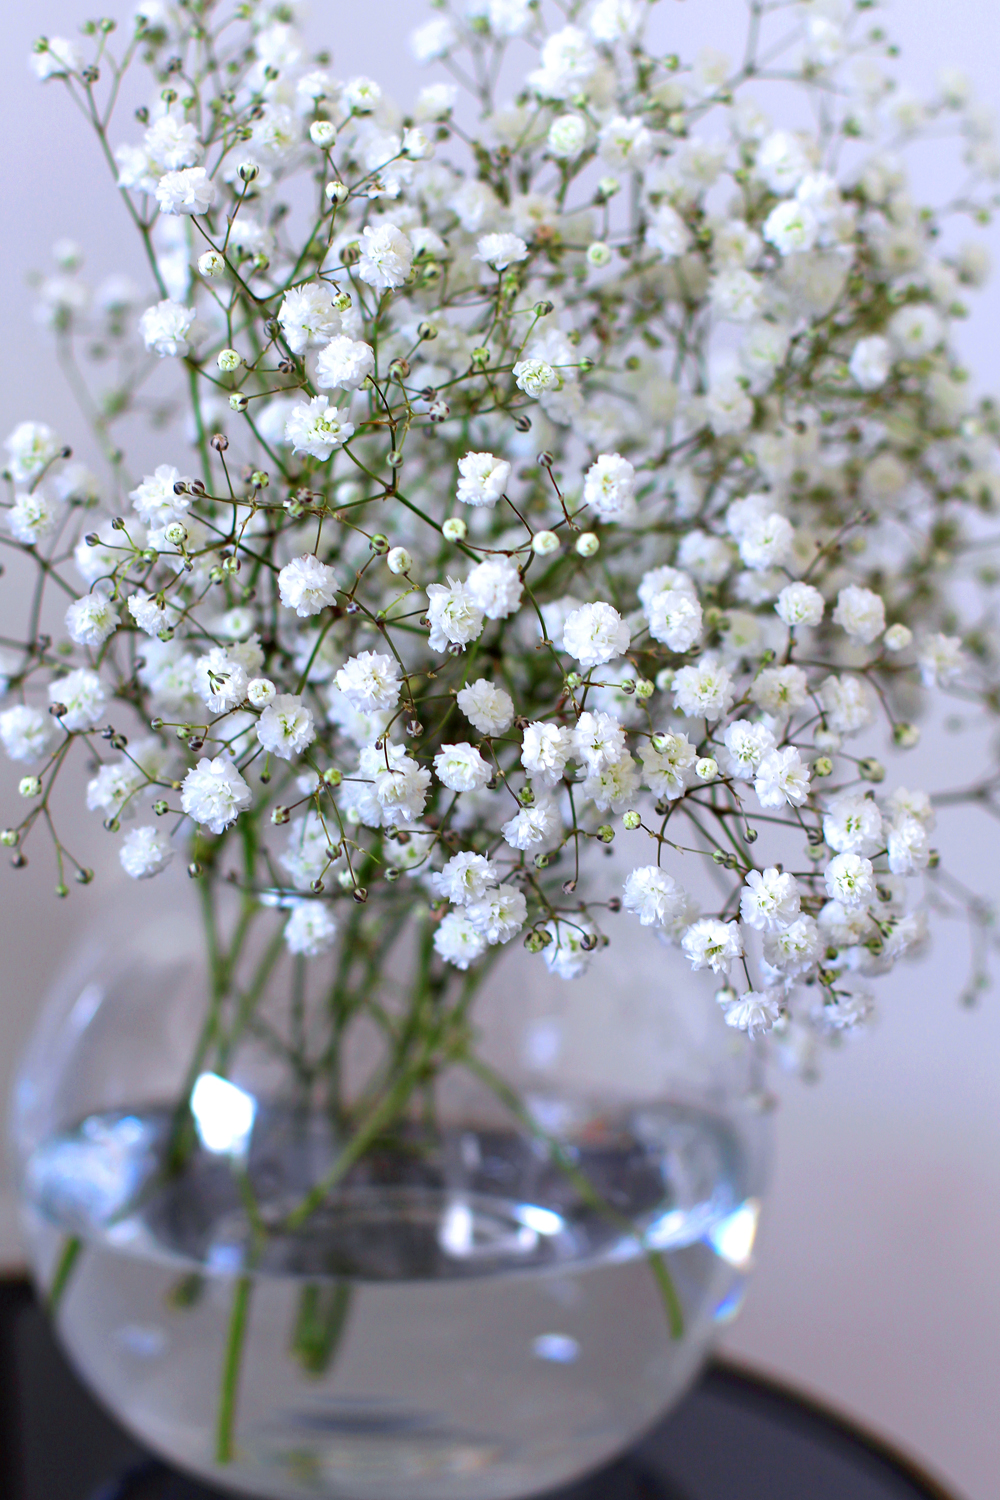 White baby's breath flowers - UK lifestyle & interiors blog